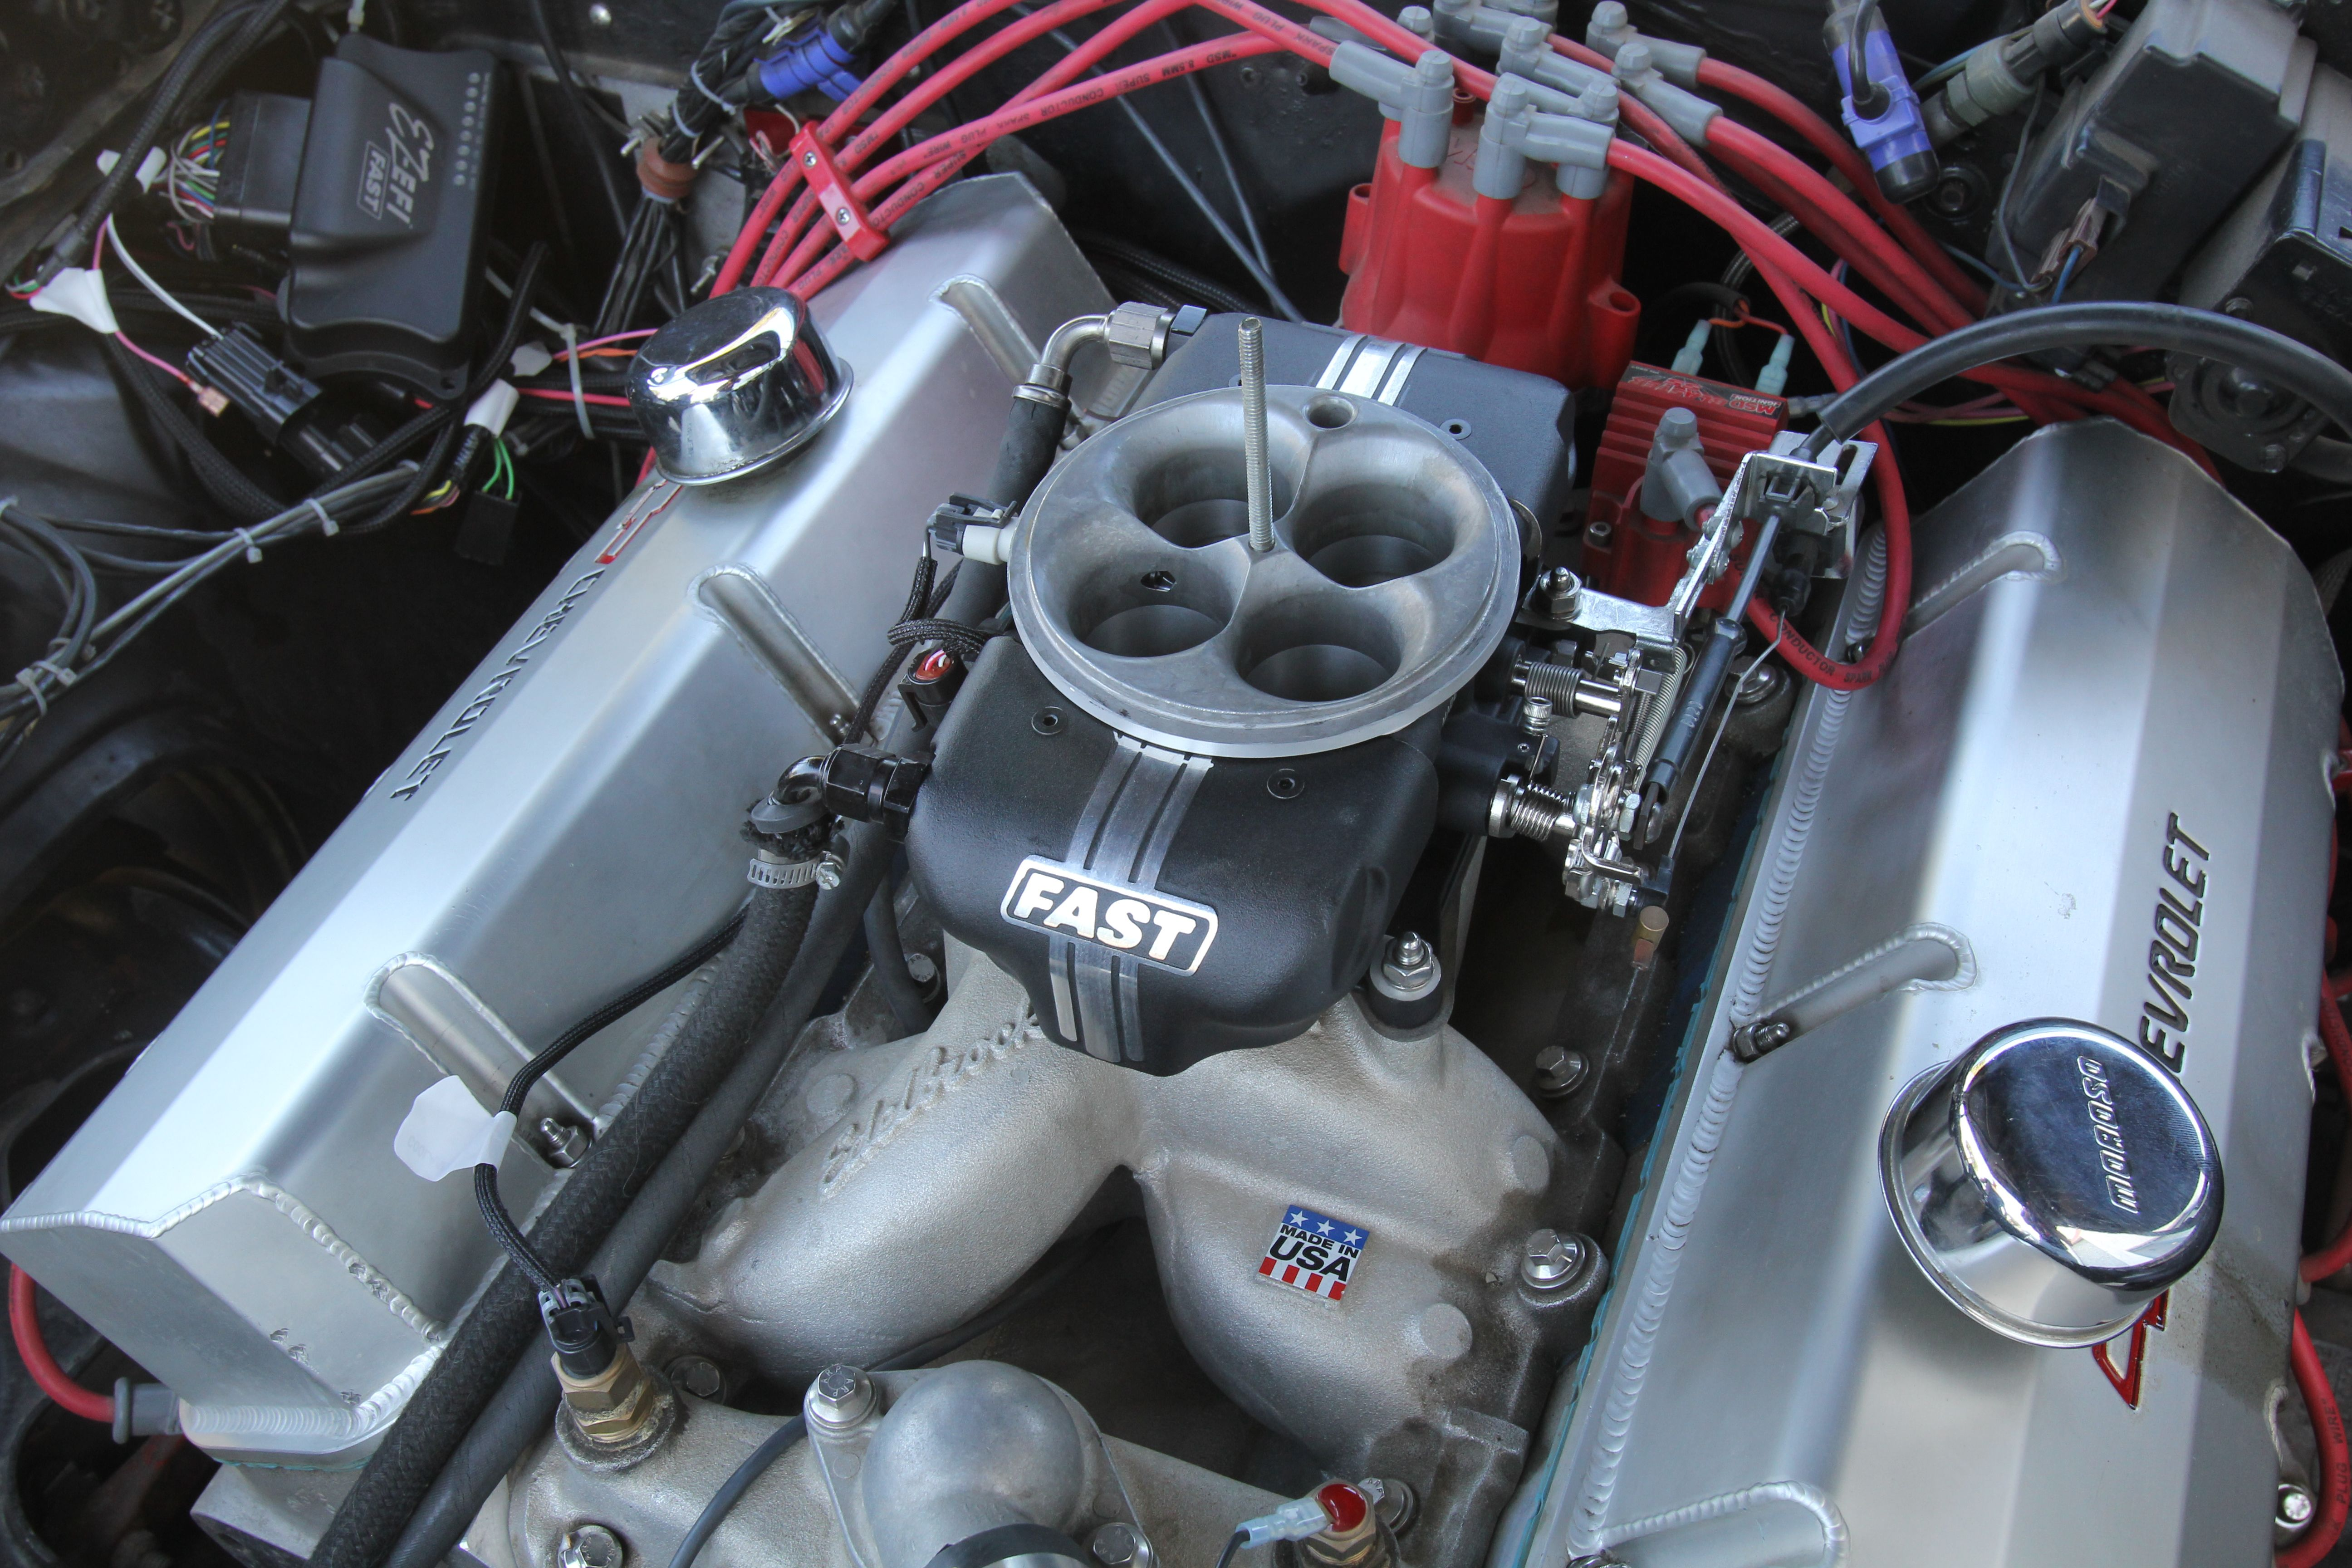 I recently bought an EZ-EFI throttle body fuel injection